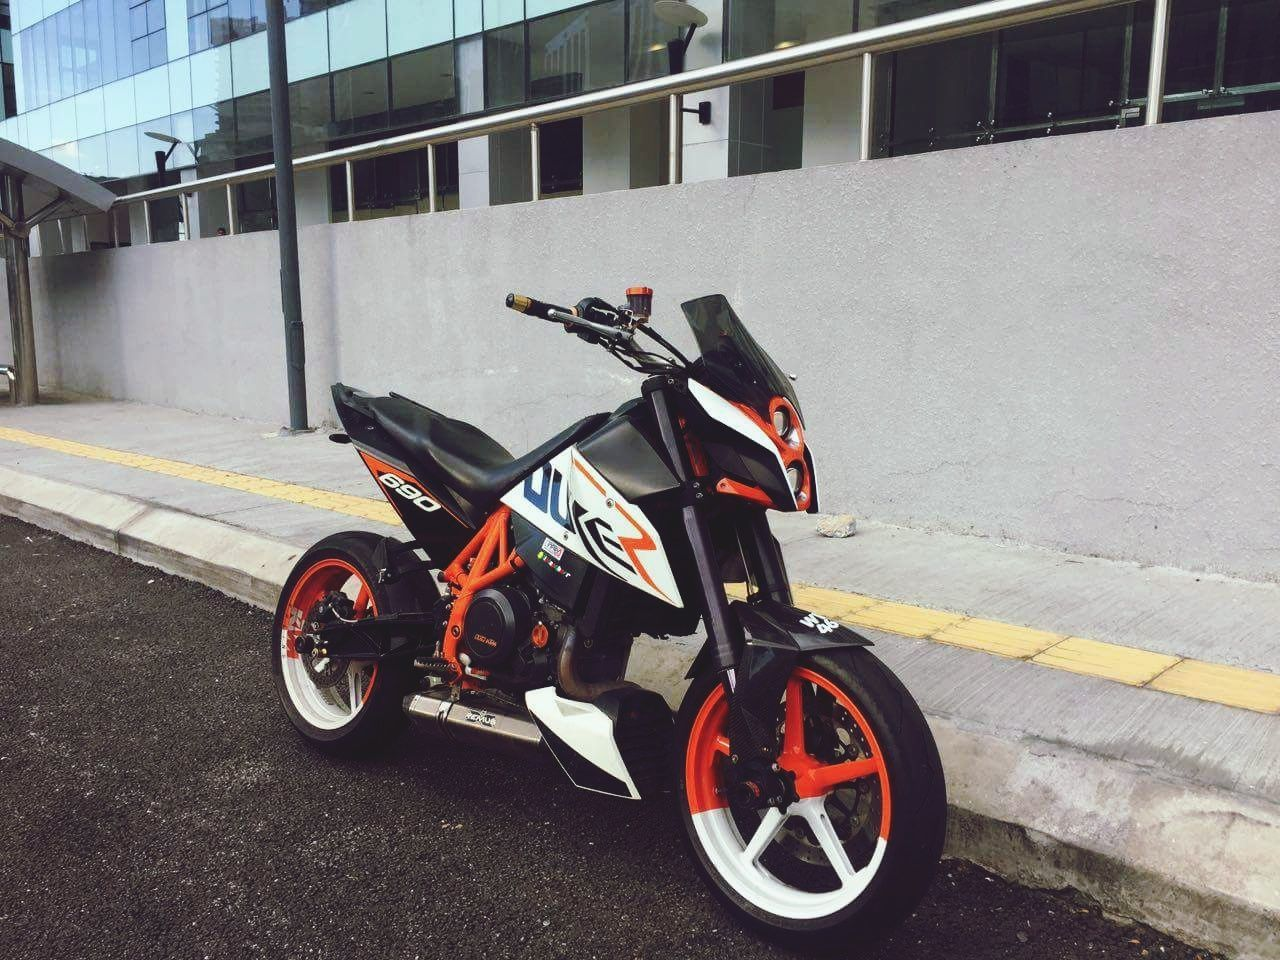 transportation, land vehicle, mode of transport, building exterior, built structure, architecture, stationary, outdoors, day, scooter, motorcycle, no people, helmet